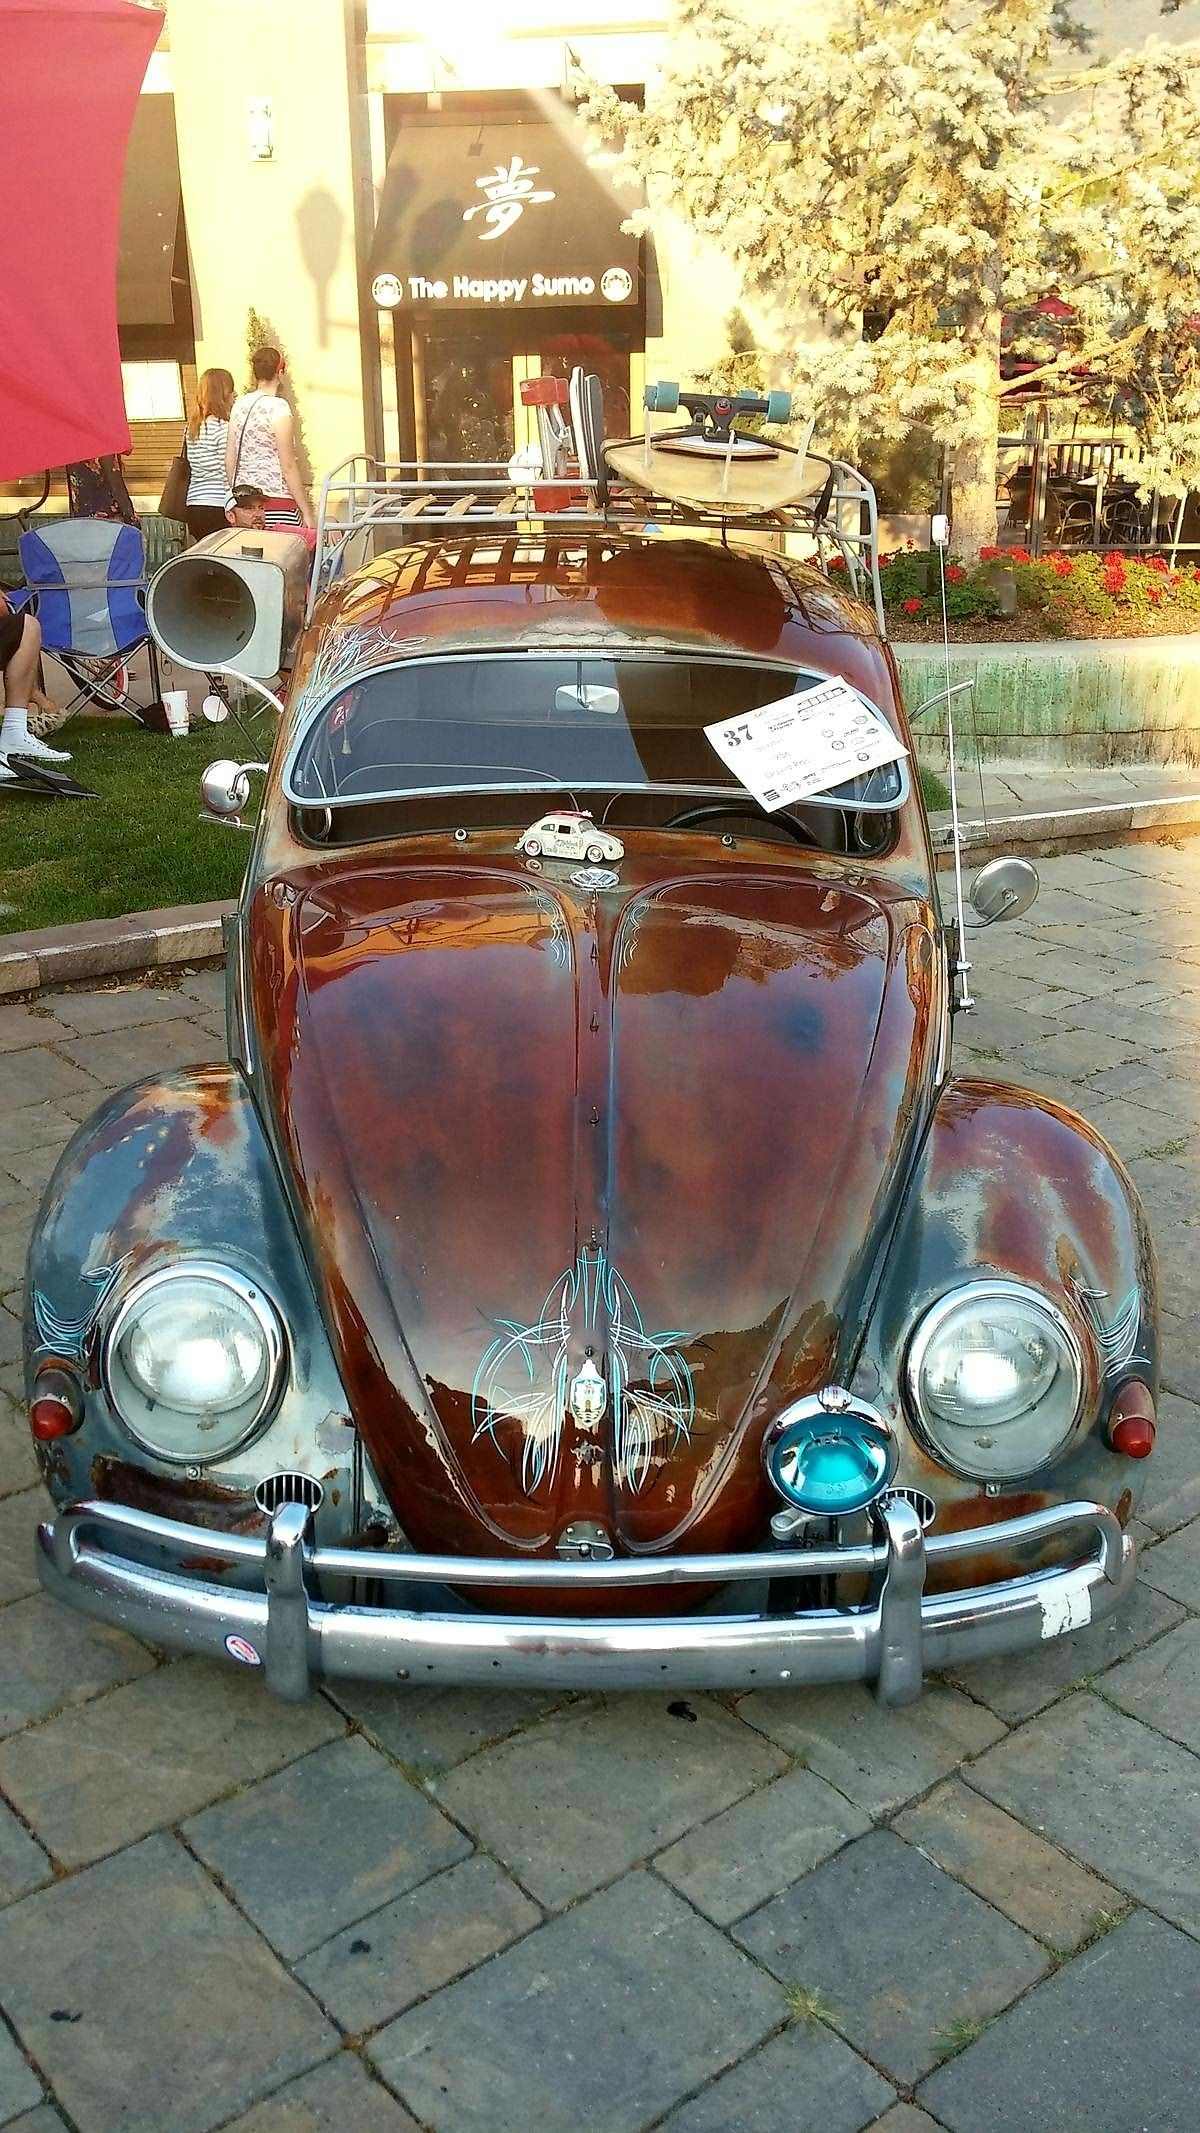 Vw Bug Slam D Rusty Rat With Gloss And Pinstripes Vintage Air Cooler Roof Rack Sweet Car Volkswagen Volkswagen Vw Cars